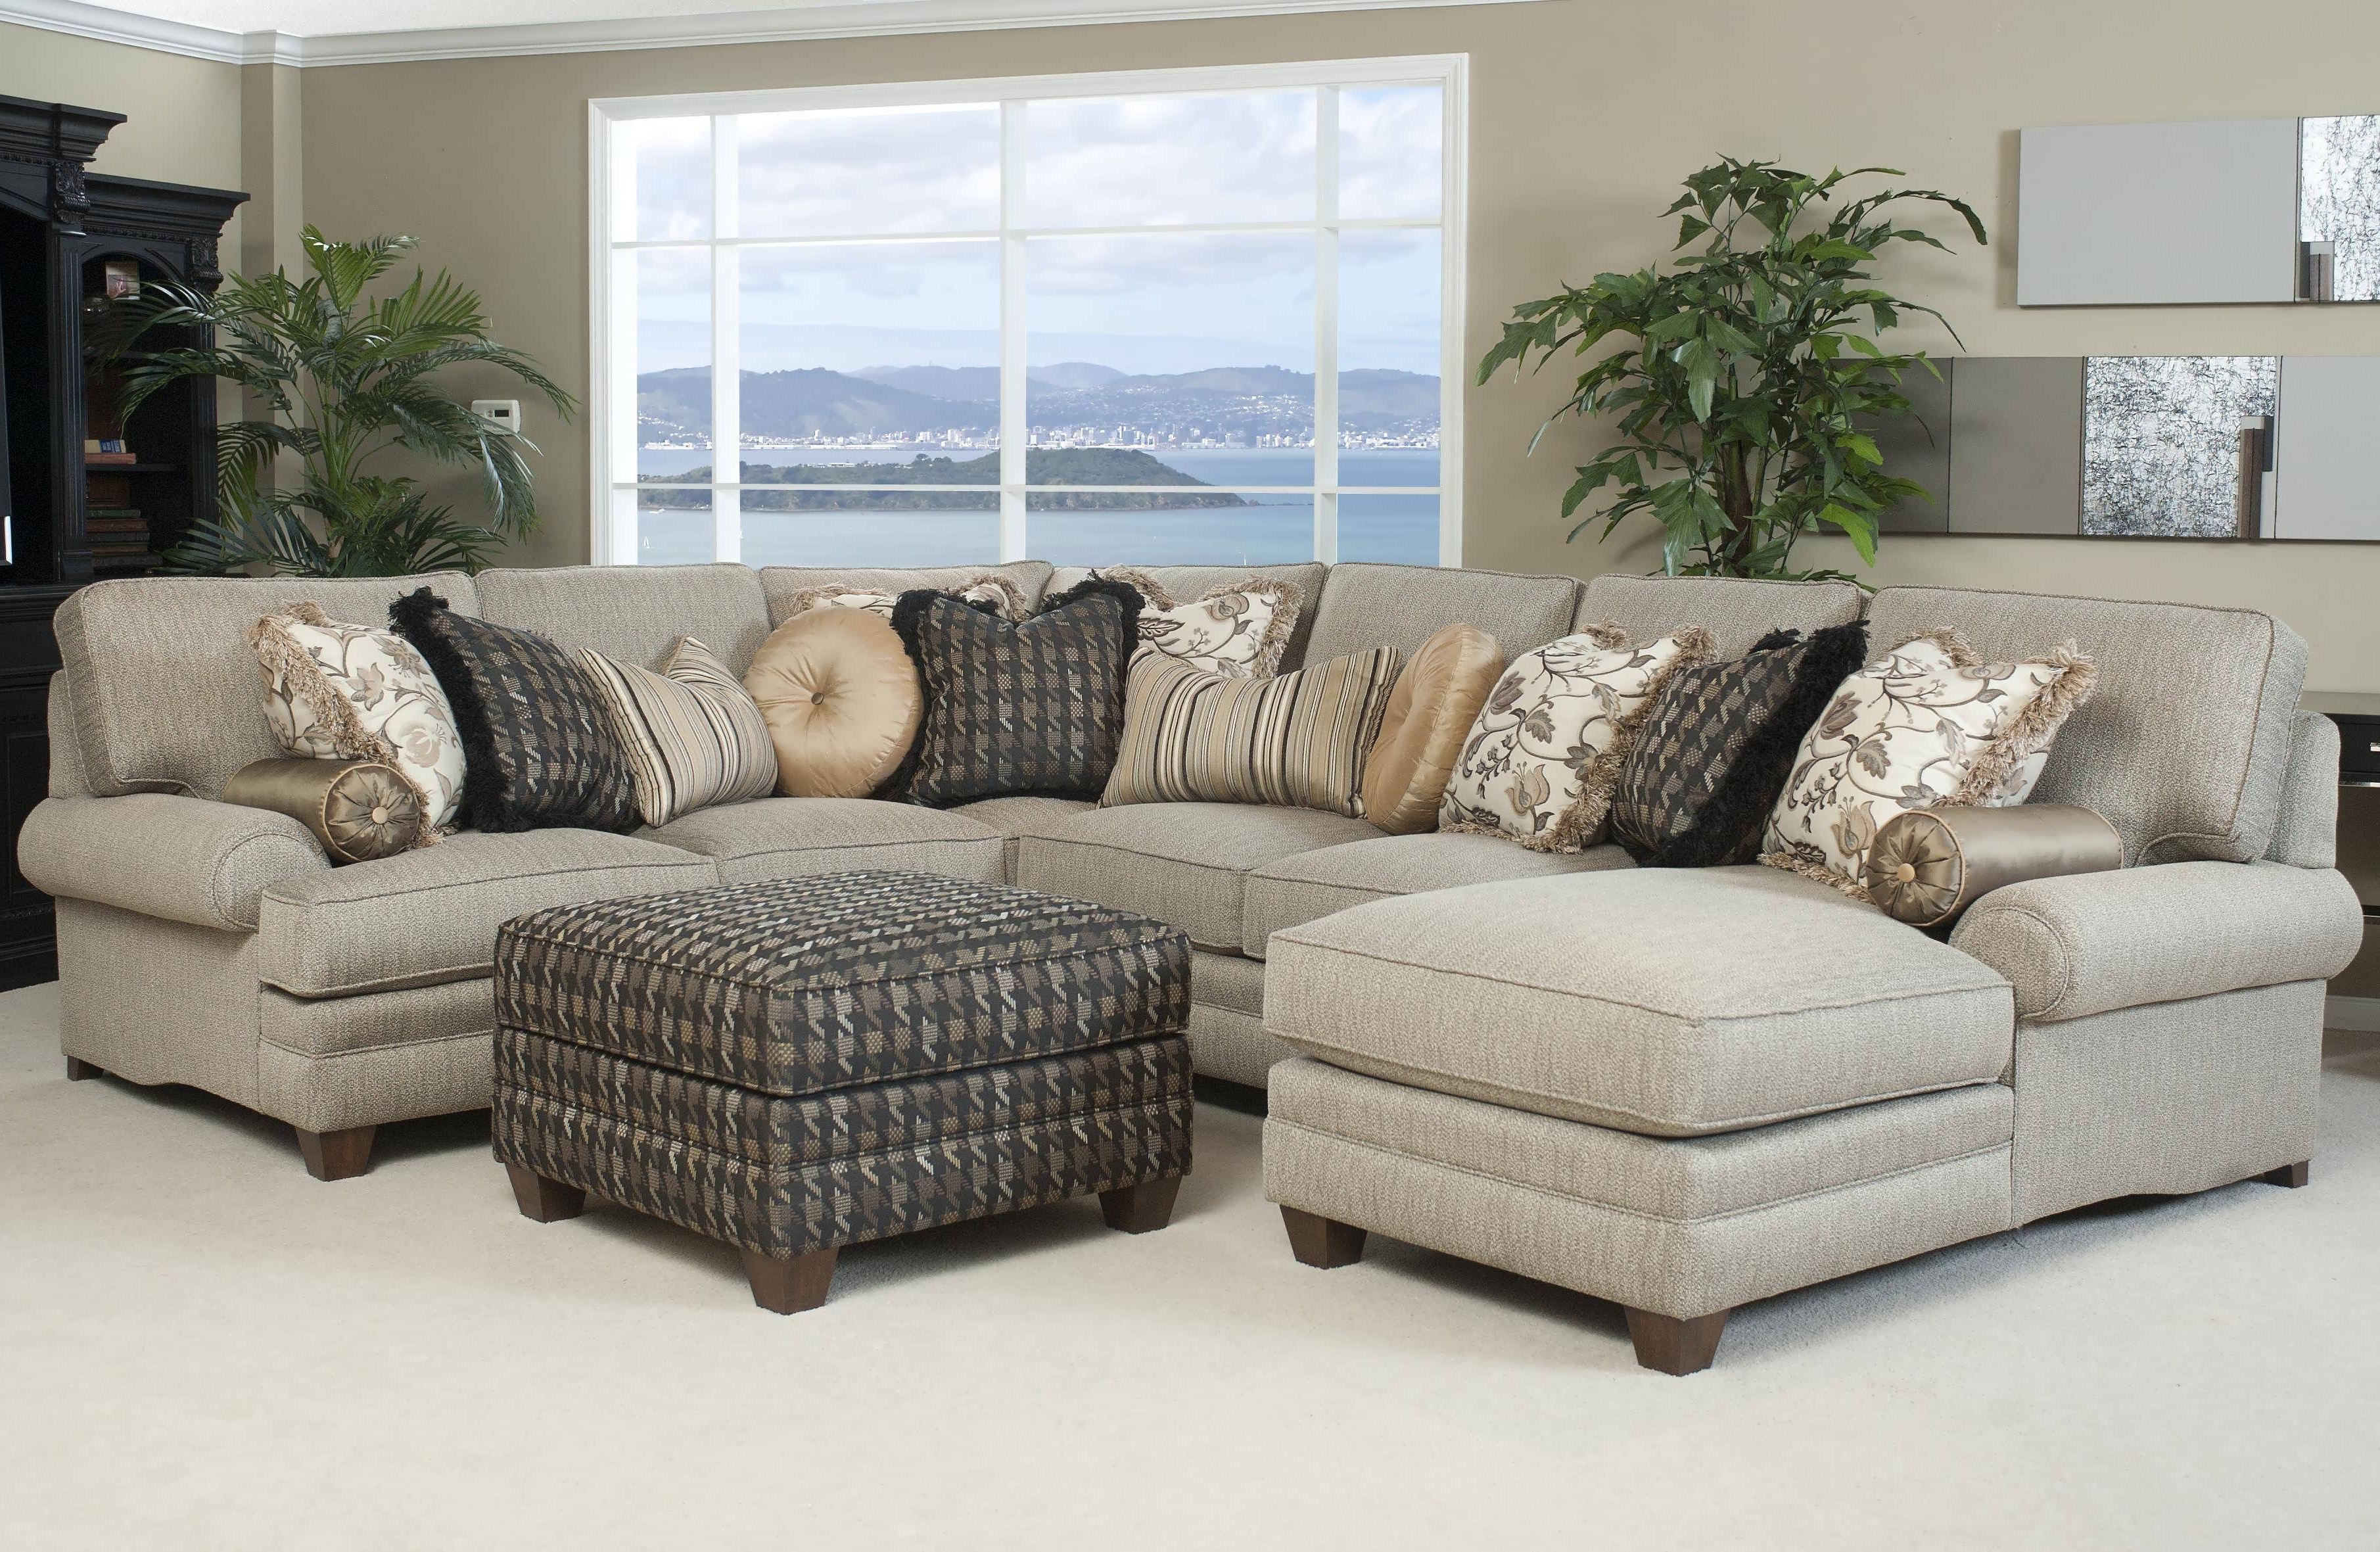 Chaise Lounge Sectional Sofas With Regard To Most Current Sofa : Couches L Sofa Microfiber Sectional White Sectional Small (View 7 of 15)